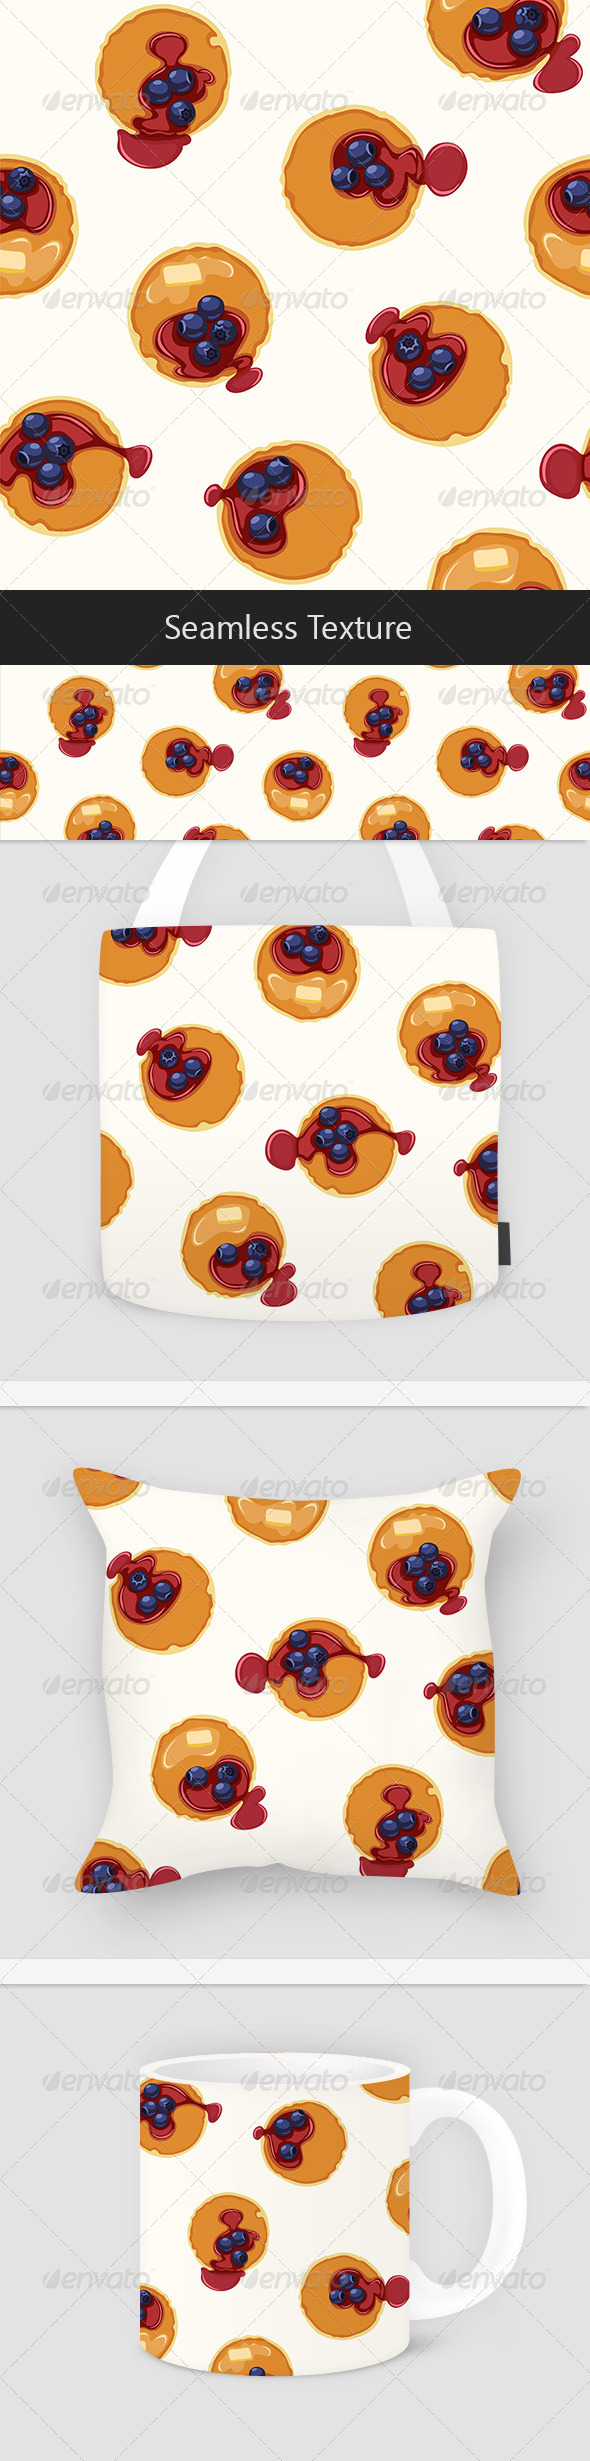 Breakfast With Pancakes and Blueberries Seamless Vector